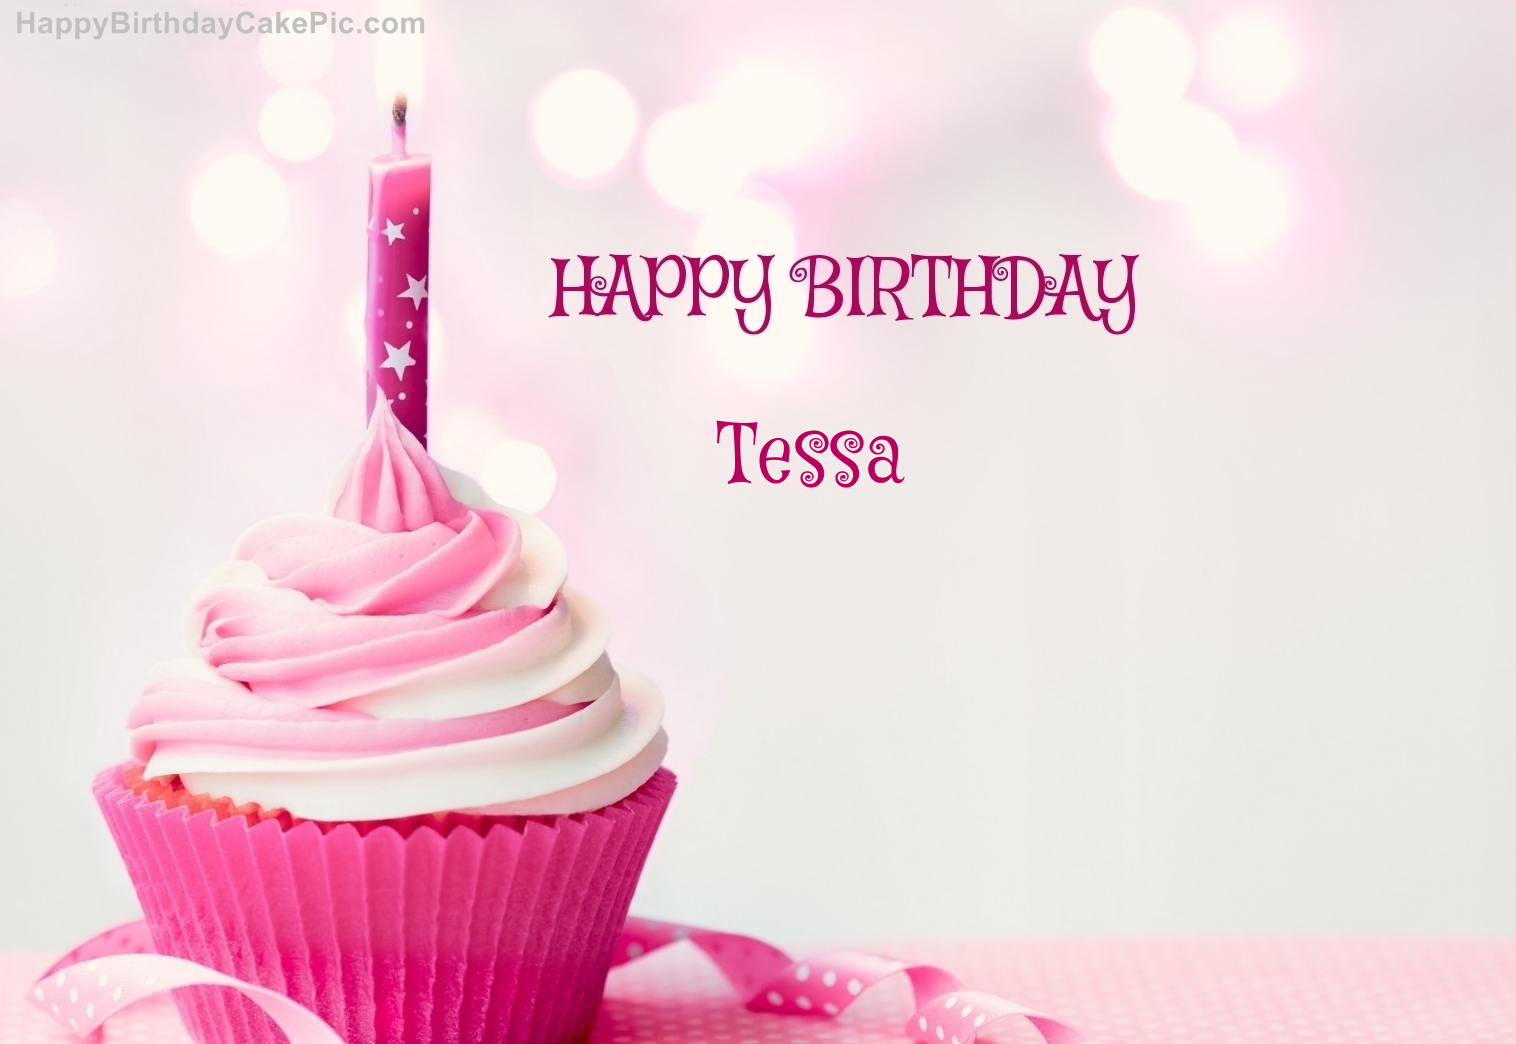 Happy Birthday Cupcake Candle Pink Cake For Tessa